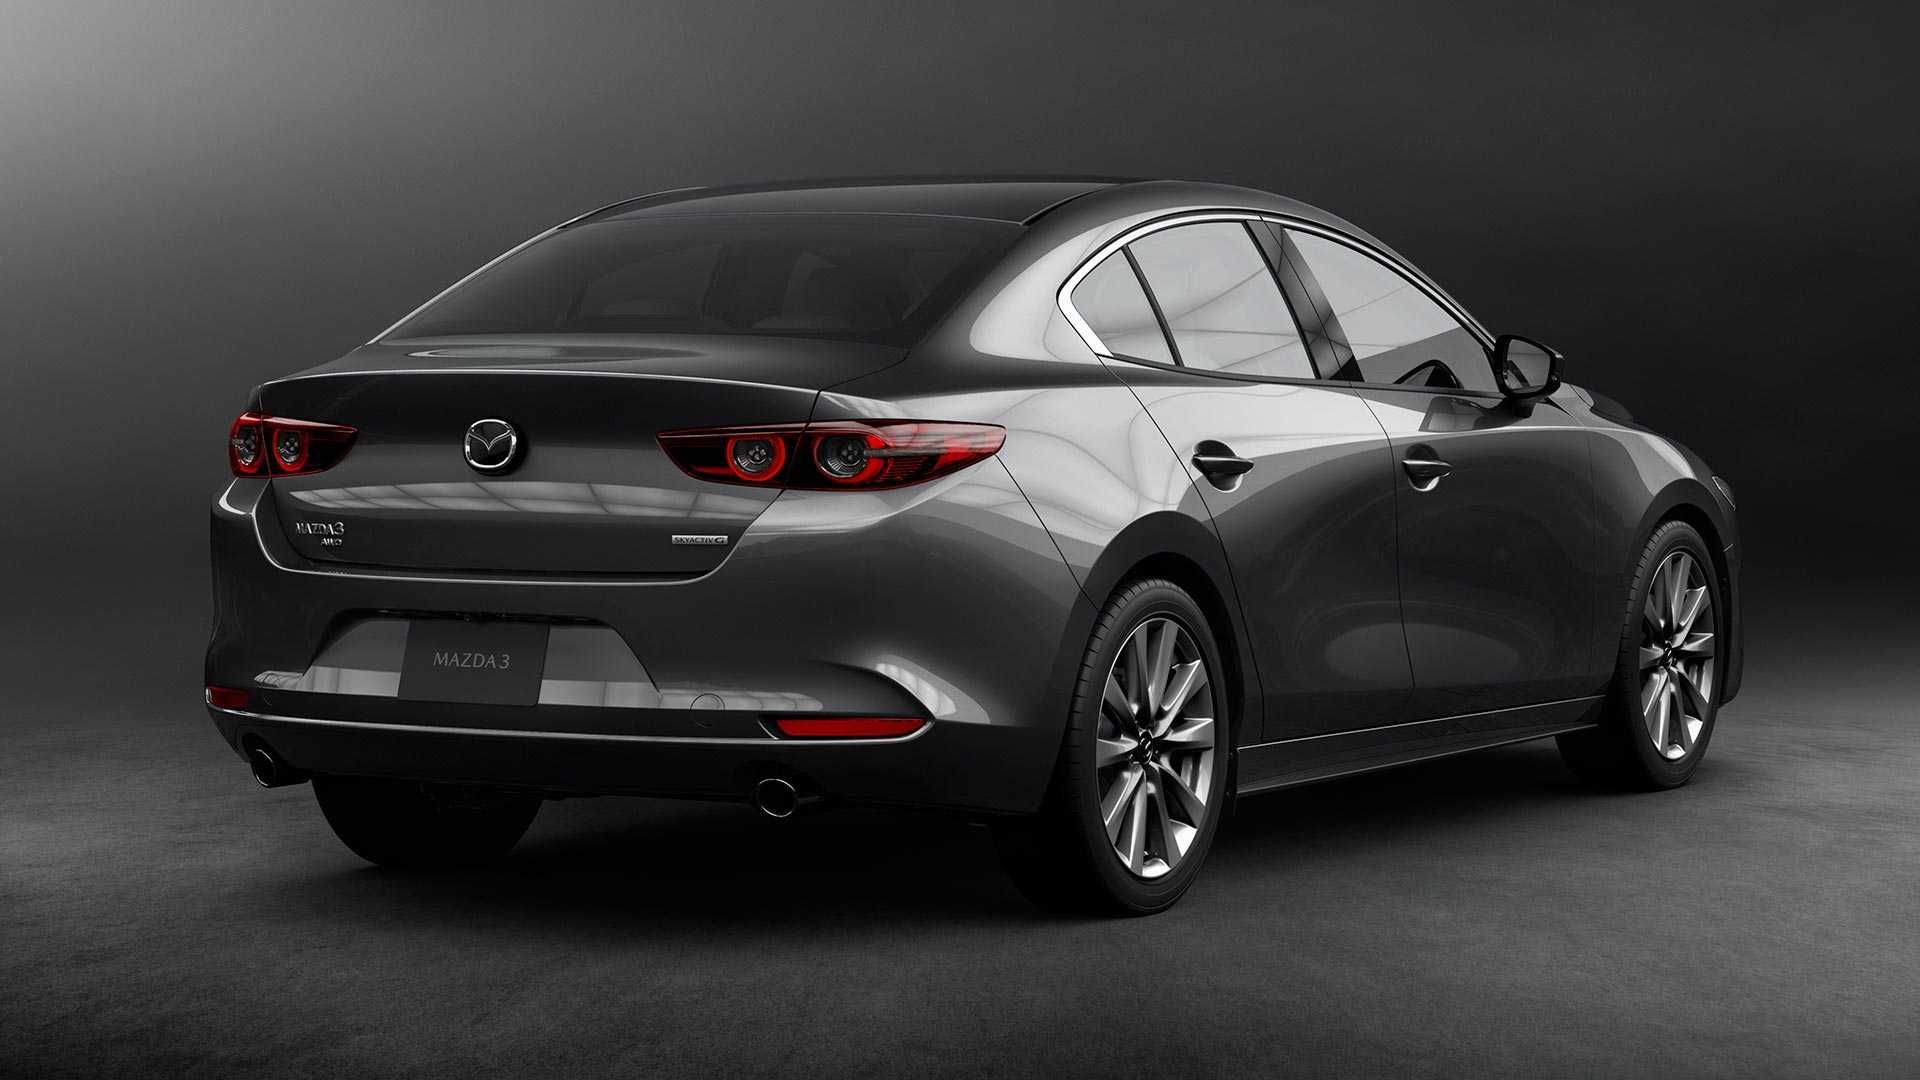 The New Mazda3 Has Been Redesigned From Ground Up With A Head Turning Design Available All Wheel Drive And First Lication Of Its Skyactiv X